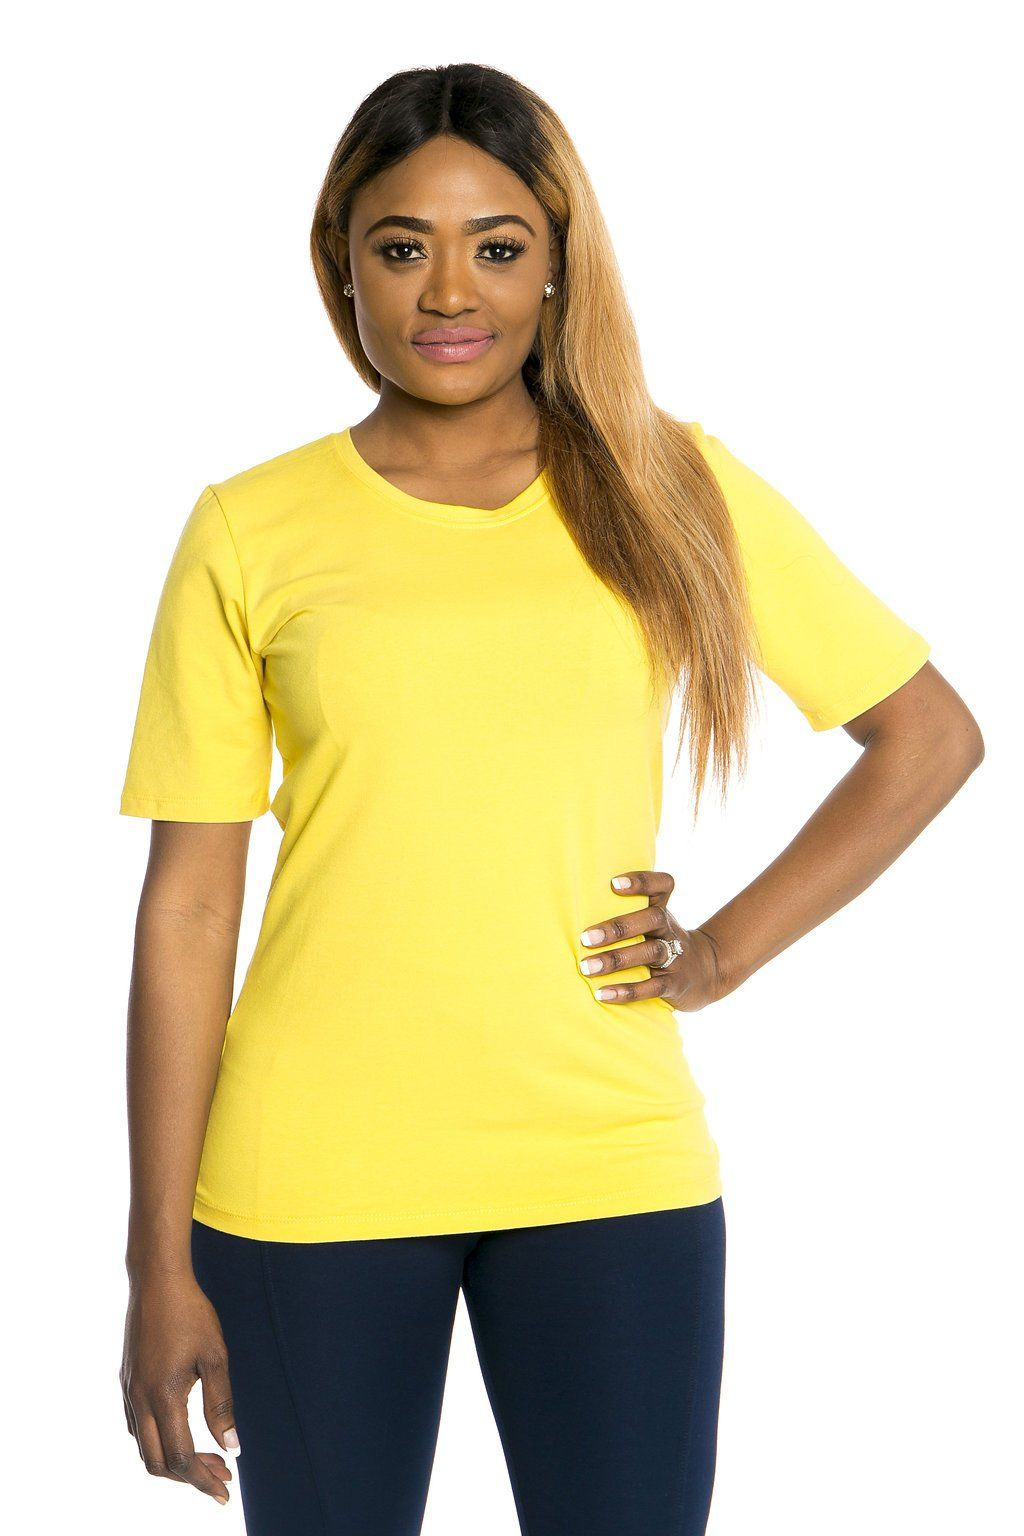 Scoop Neck 1/2 Sleeve w/o Cuff - Marigold Yellow - M only